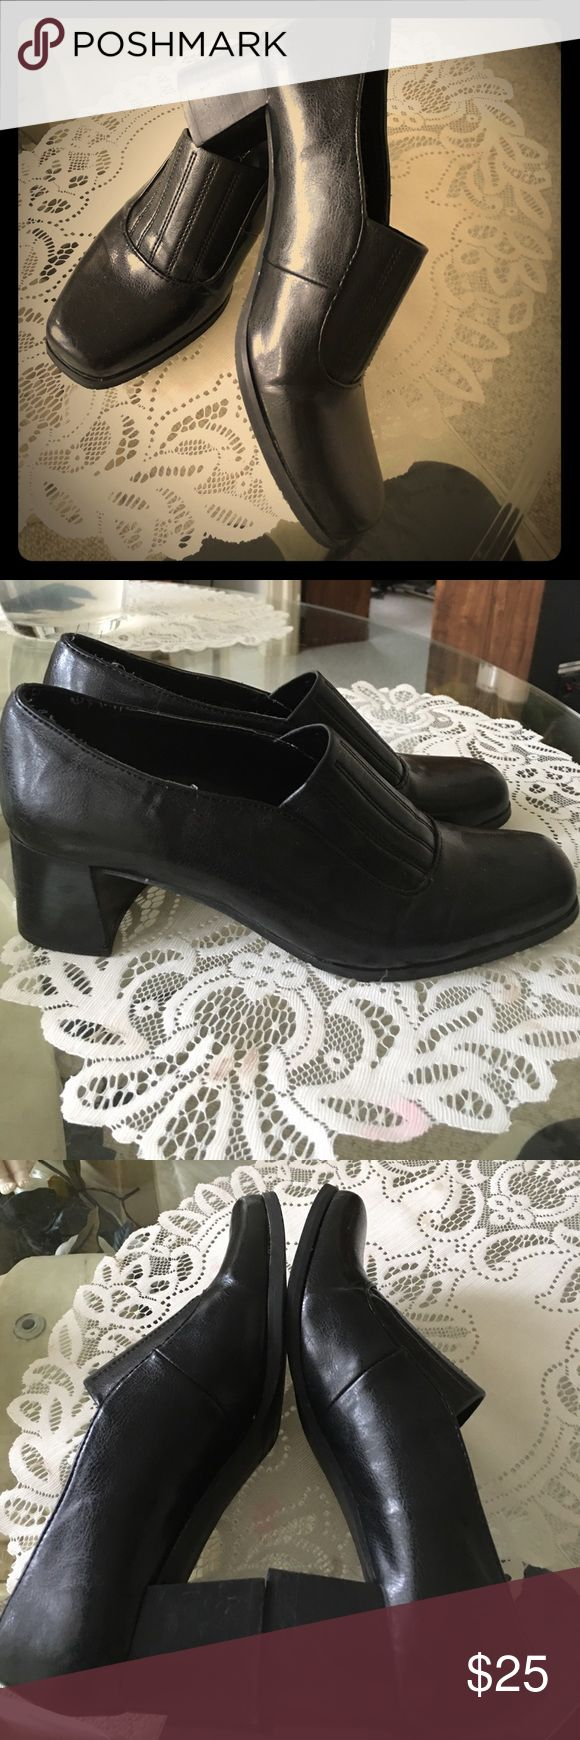 FRANCO  SARTO SIZE 7.5 Black shoes FRANCO SARTO - size 7.5 ladies shoes - 2.5 inch heel - and in excellent condition. These are great slide on comfortable heel  for work if u have to stand a lot the block heel gives a better support - ex shoe PRICED TO SELL Franco Sarto Shoes Heels